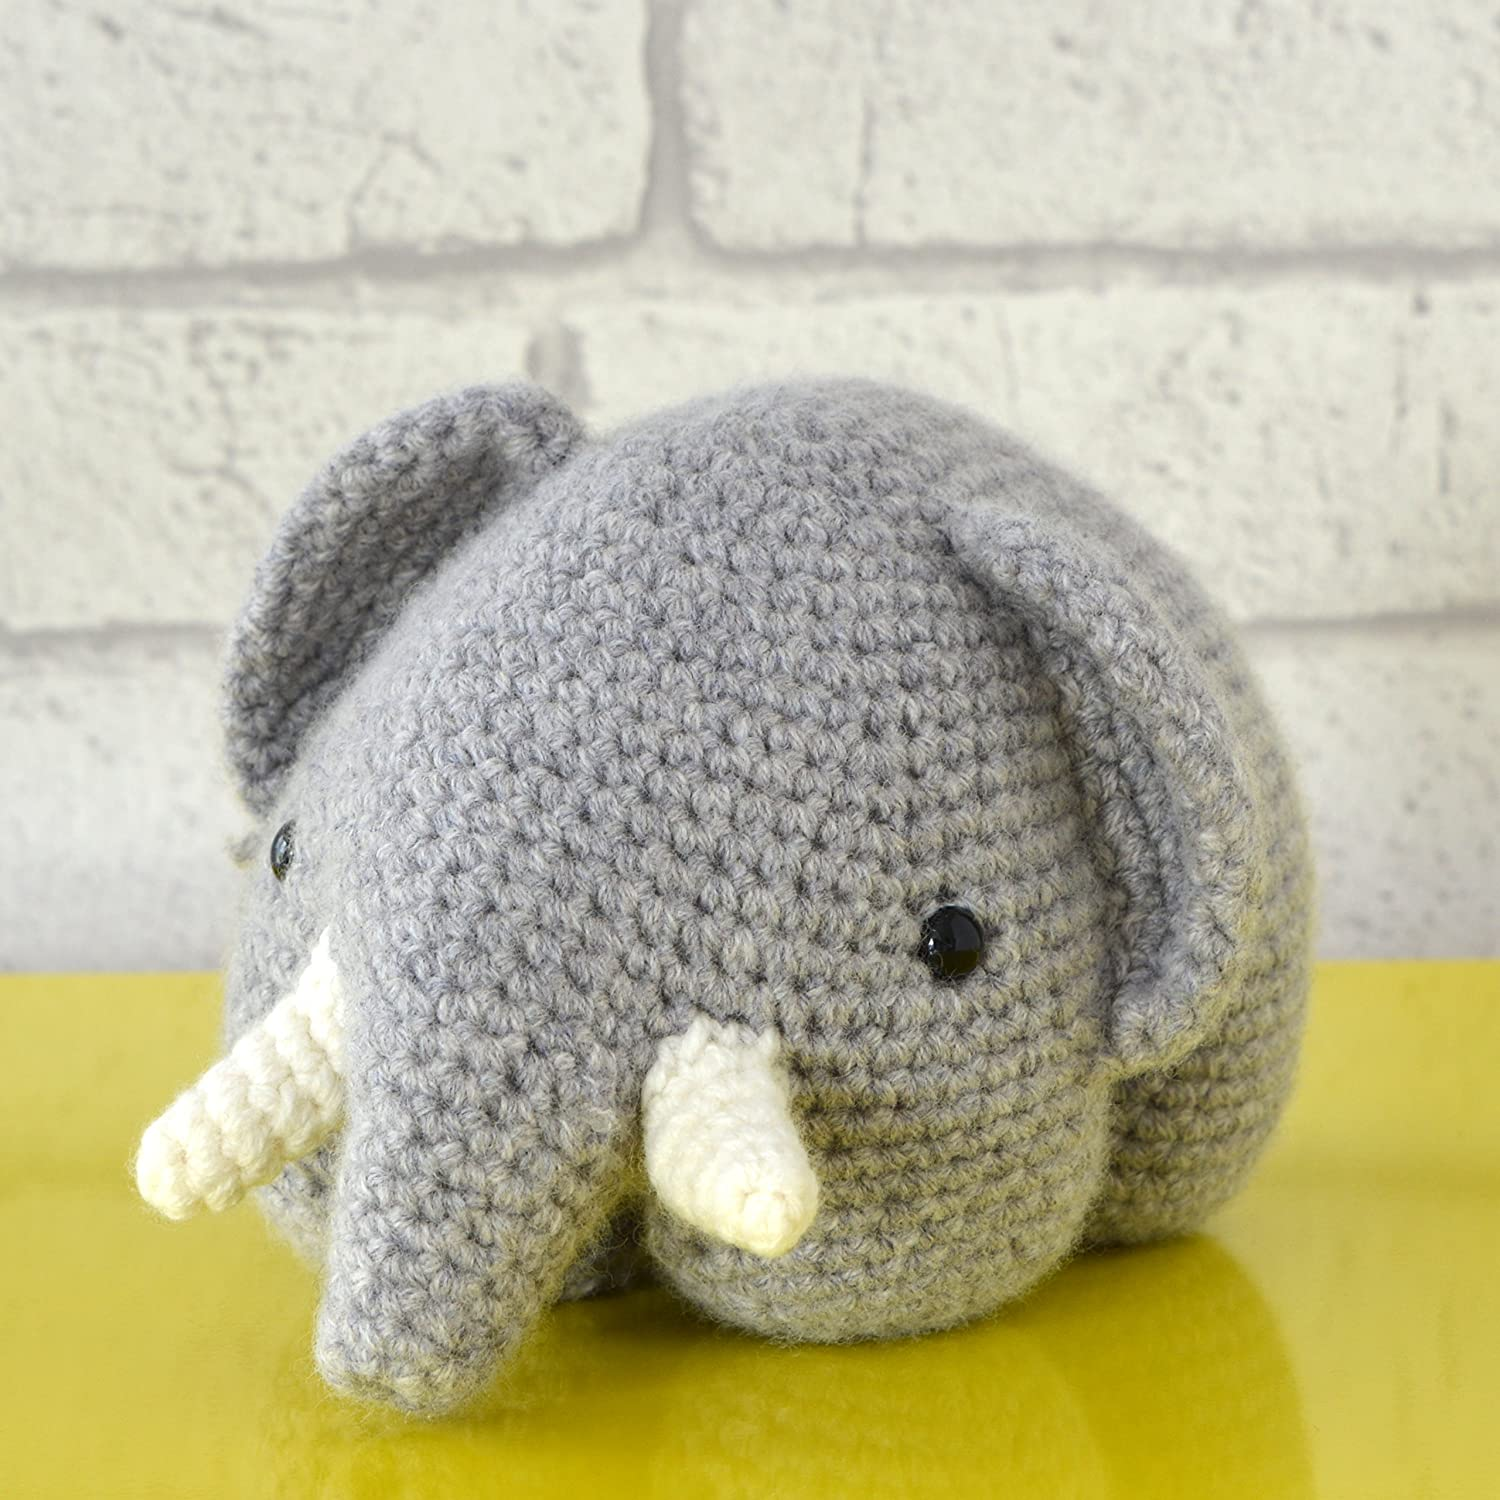 Elefante Amigurumi Kit para tejer de ganchillo, ganchillo, de los animales patrón de Crochet, patrones de Crochet, ganchillo Animal Patrón, patrón, ganchillo Kits,: Amazon.es: Hogar